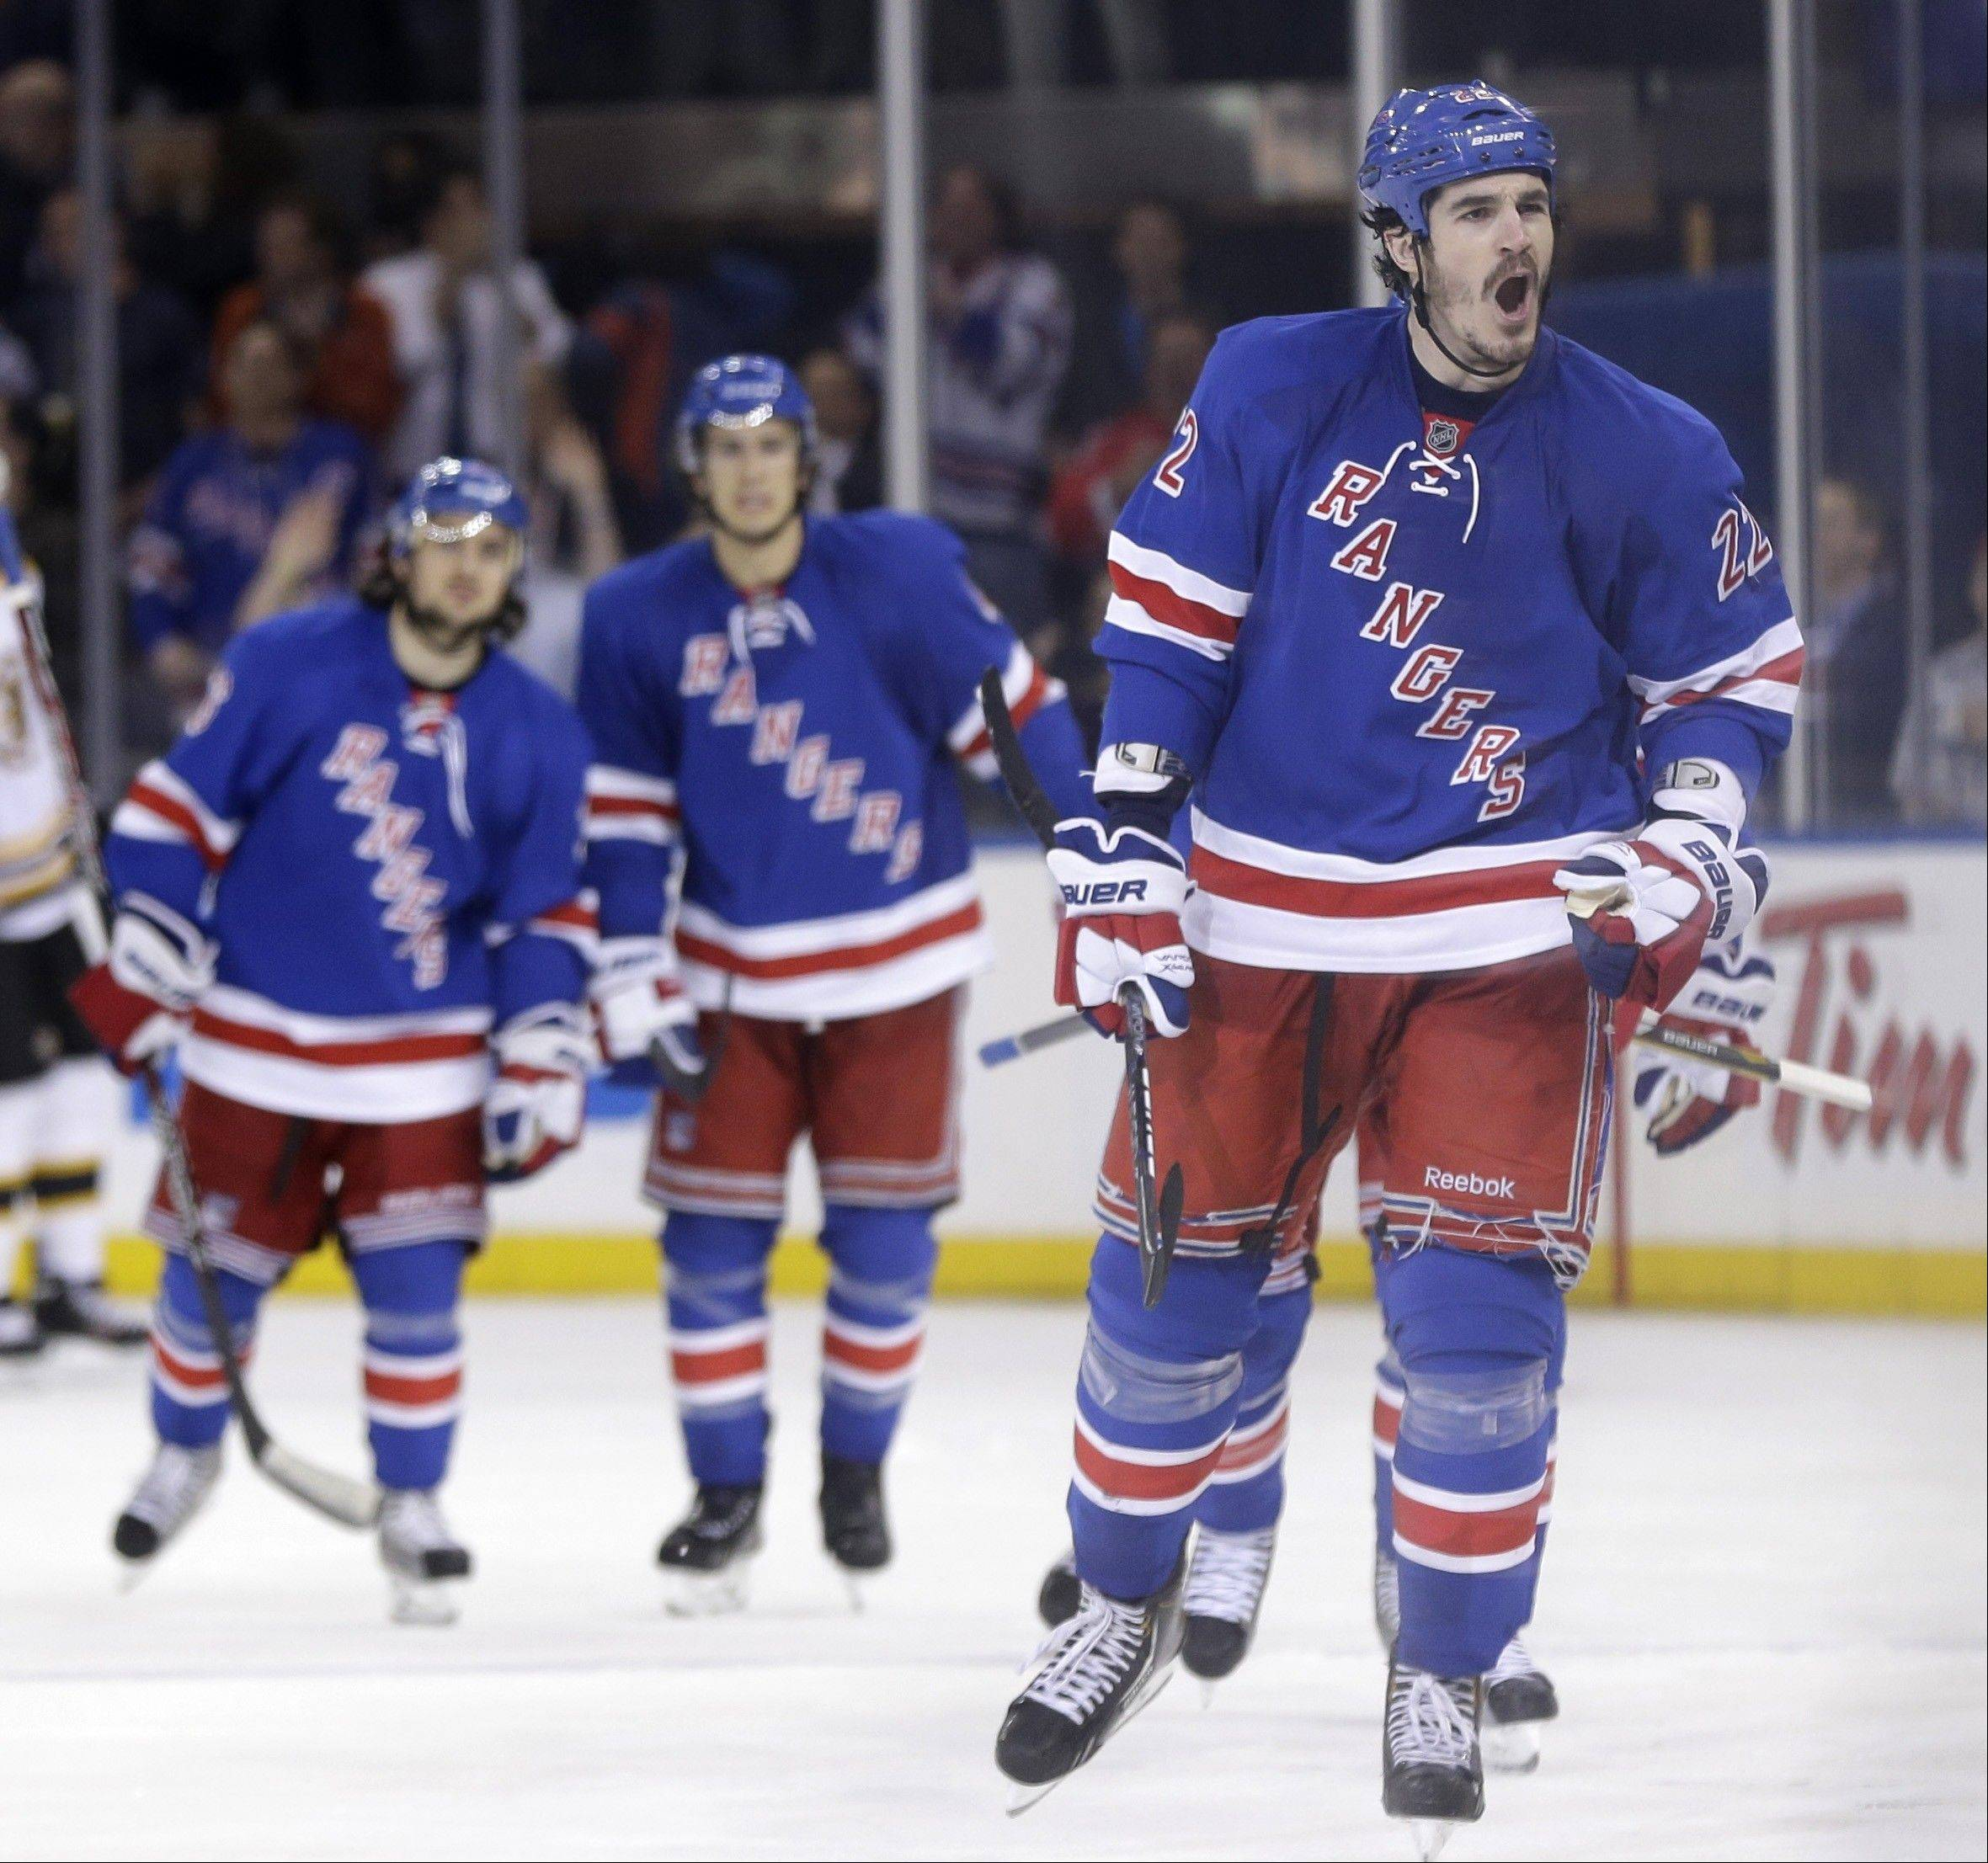 New York Rangers' Brian Boyle, right, reacts after scoring during the third period in Game 4 of the Eastern Conference semifinals against the Boston Bruins in the NHL hockey Stanley Cup playoffs in New York, Thursday, May 23, 2013, in New York.